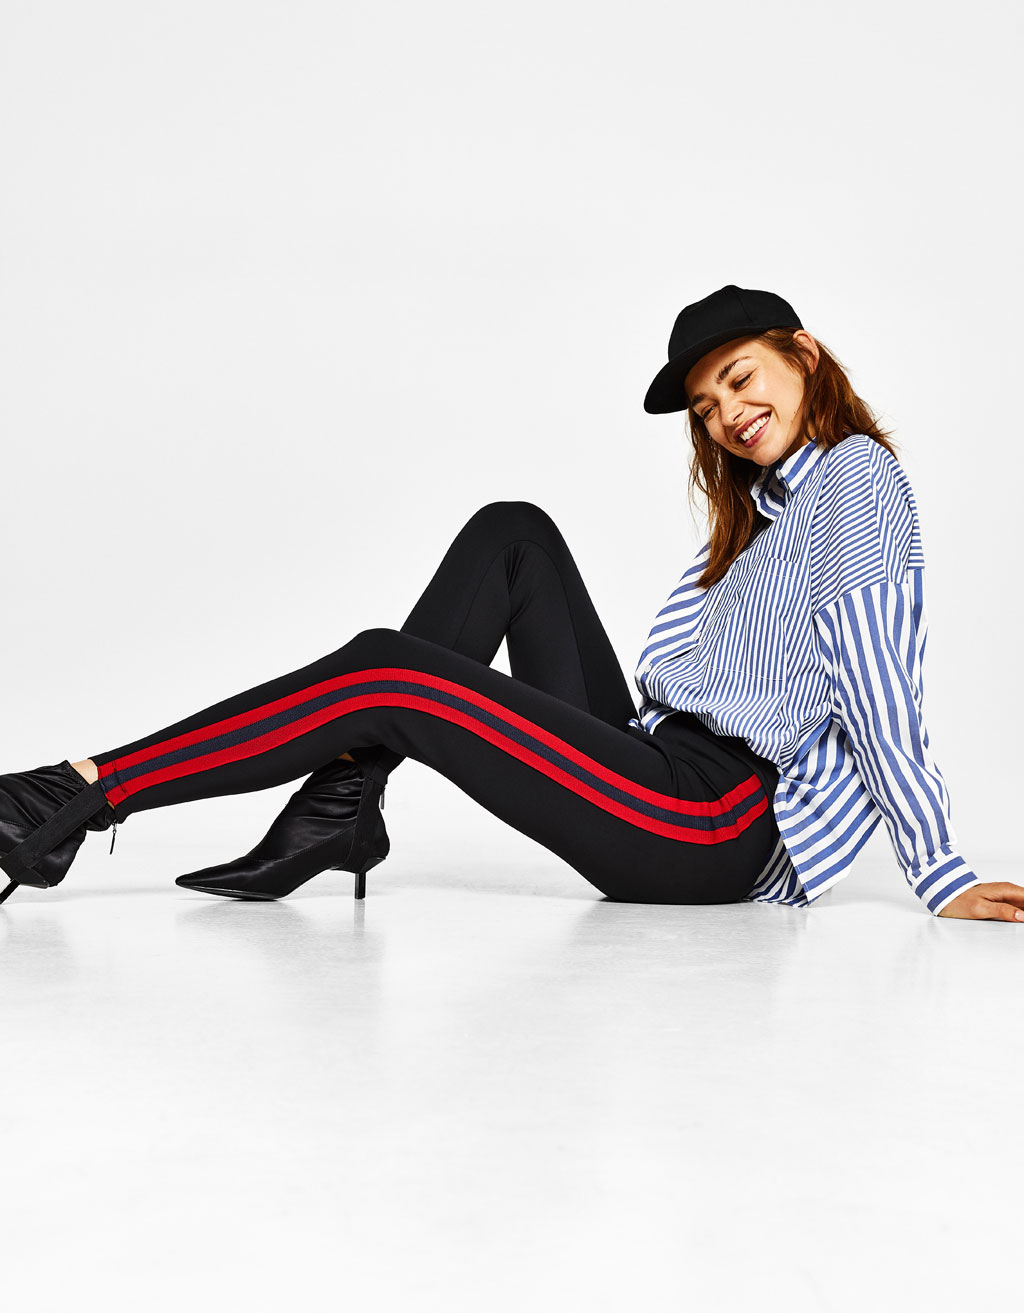 Equestrian-style pants with red stripes